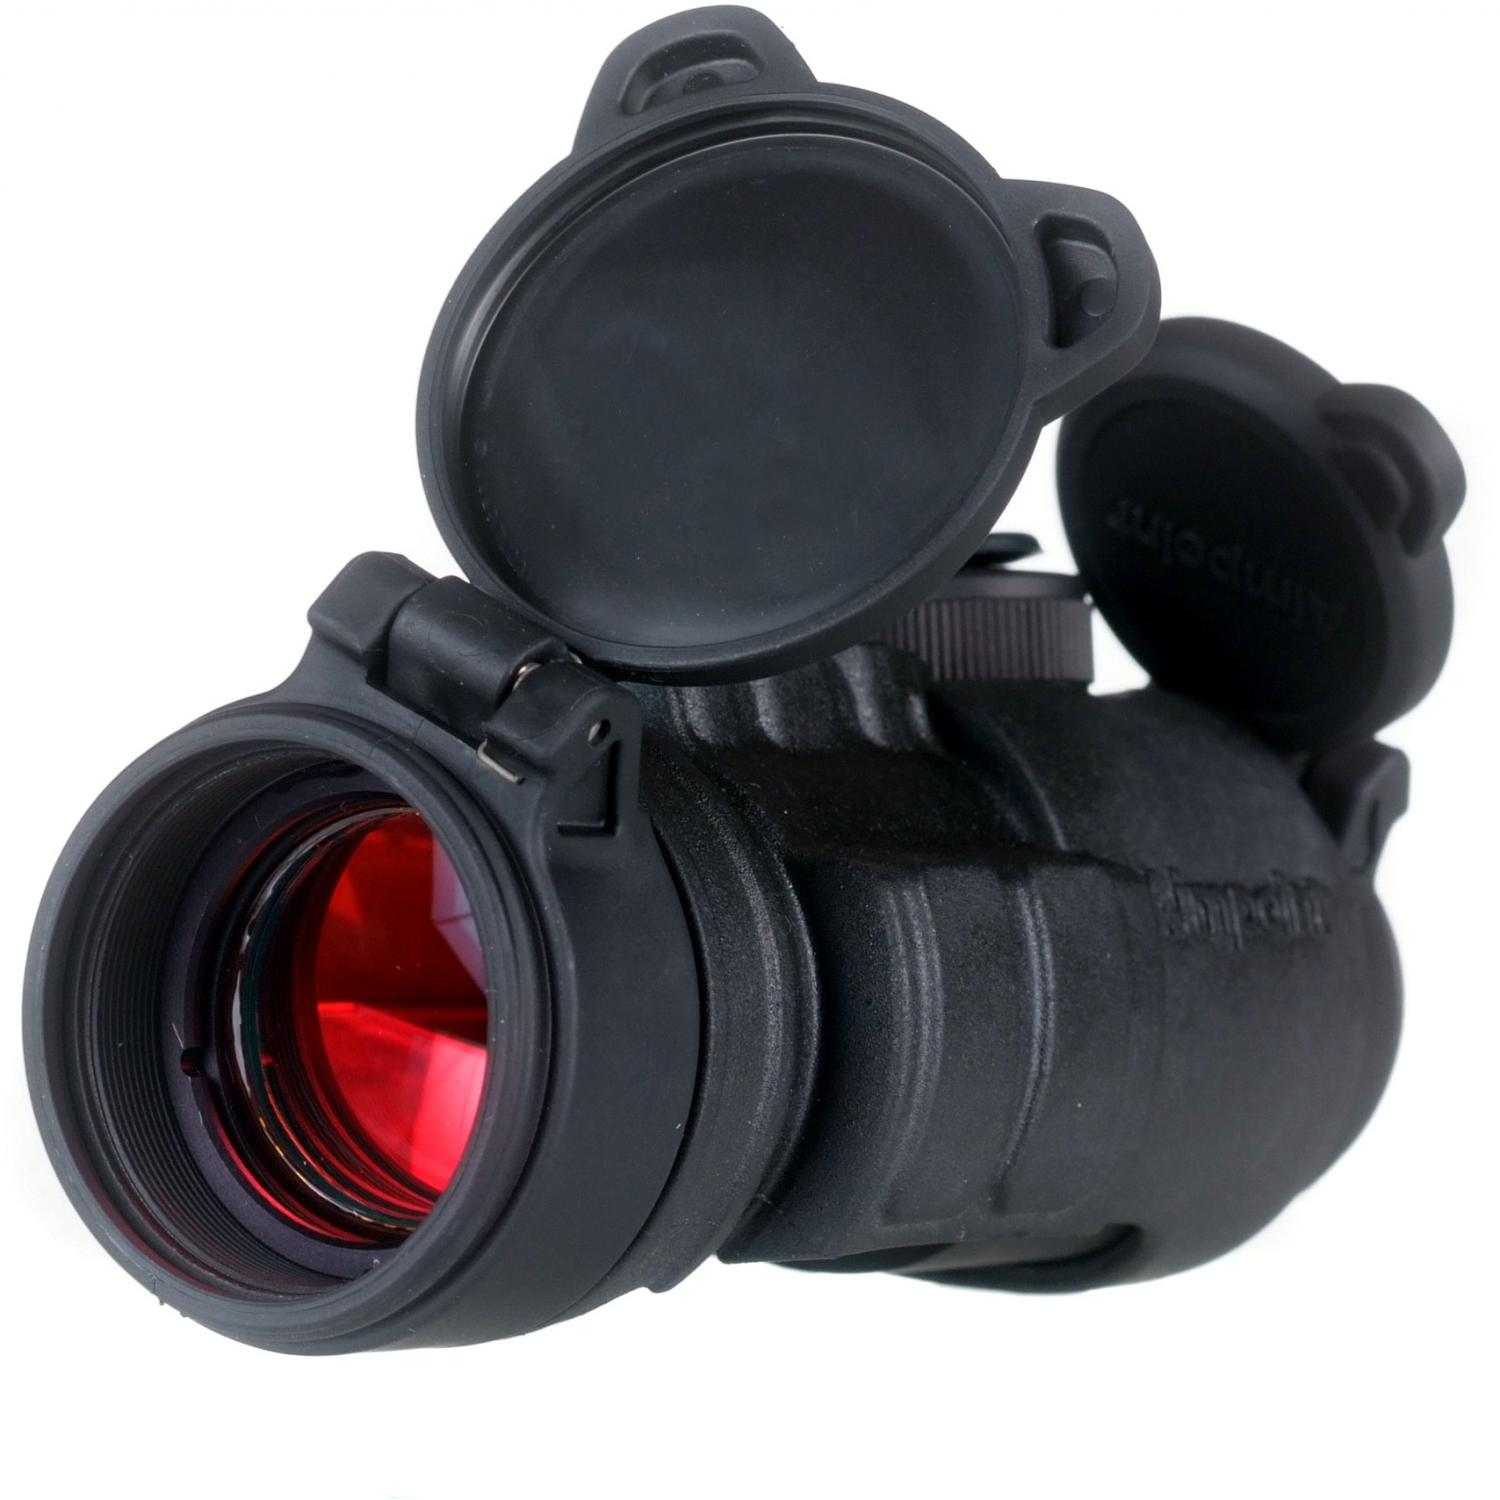 Aimpoint Compm3 Red Dot 2 Moa Sight Riflescope - Black - 11408